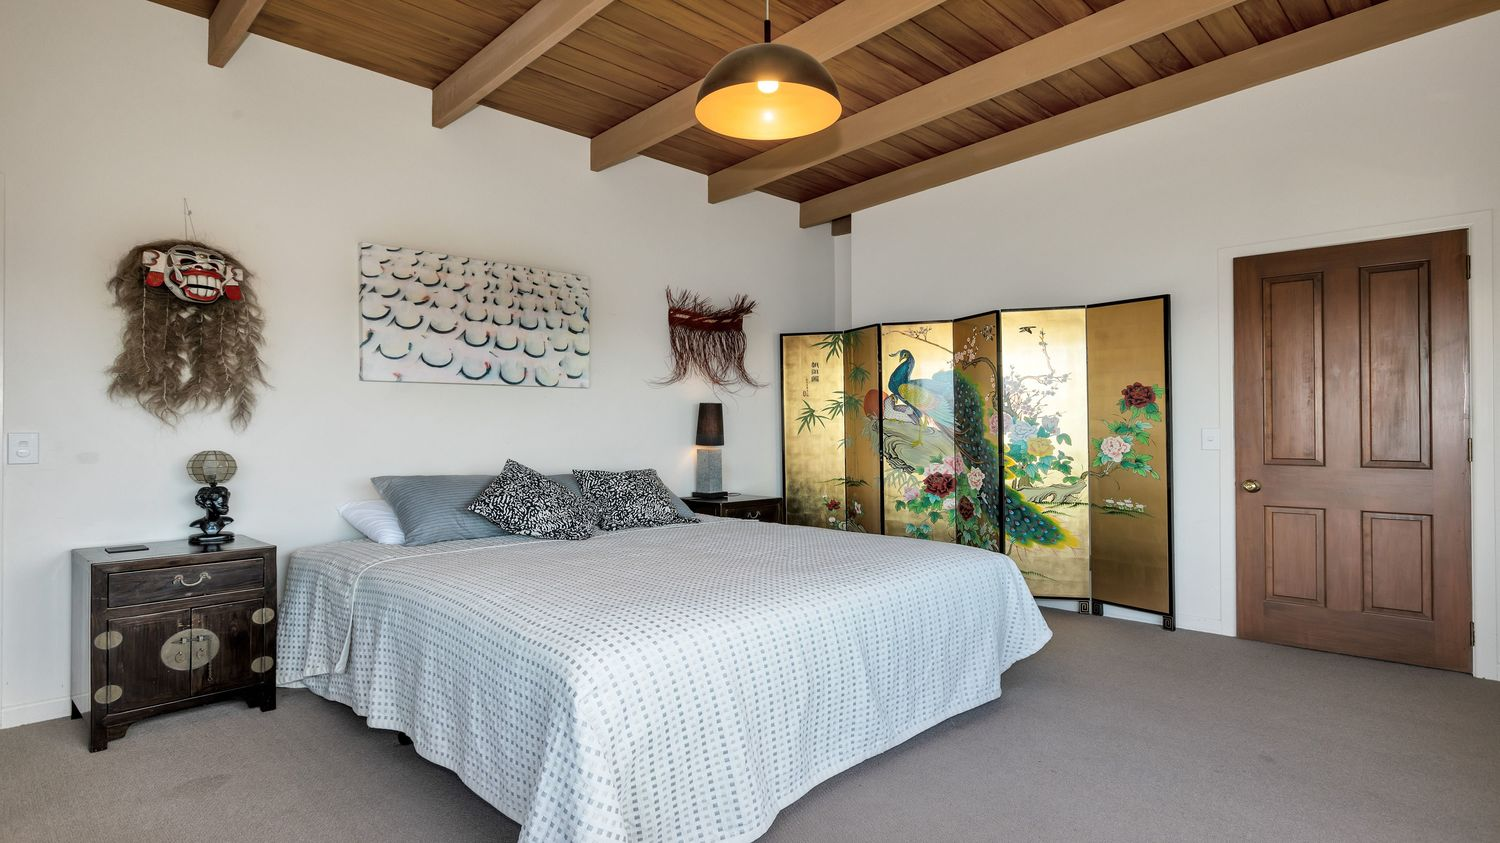 19._Seaview_with_second_bedroom_looking_into_room_1500x843.jpeg